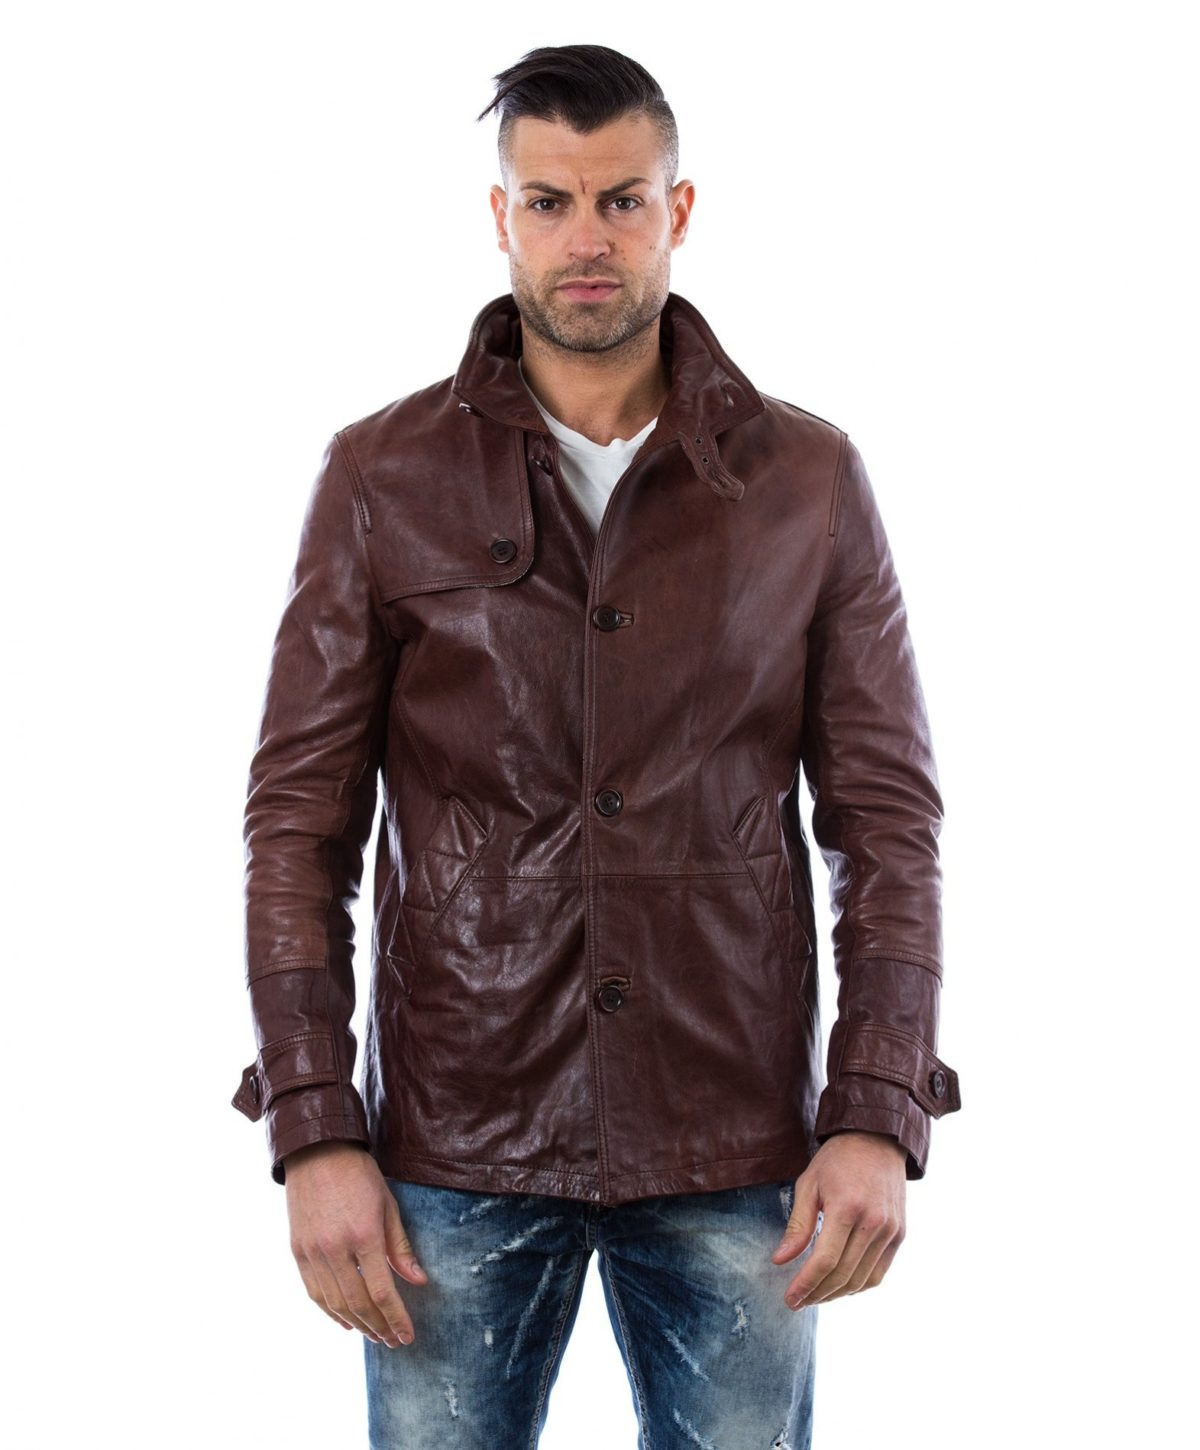 man-leather-jacket-3-buttons-brown-color-gm